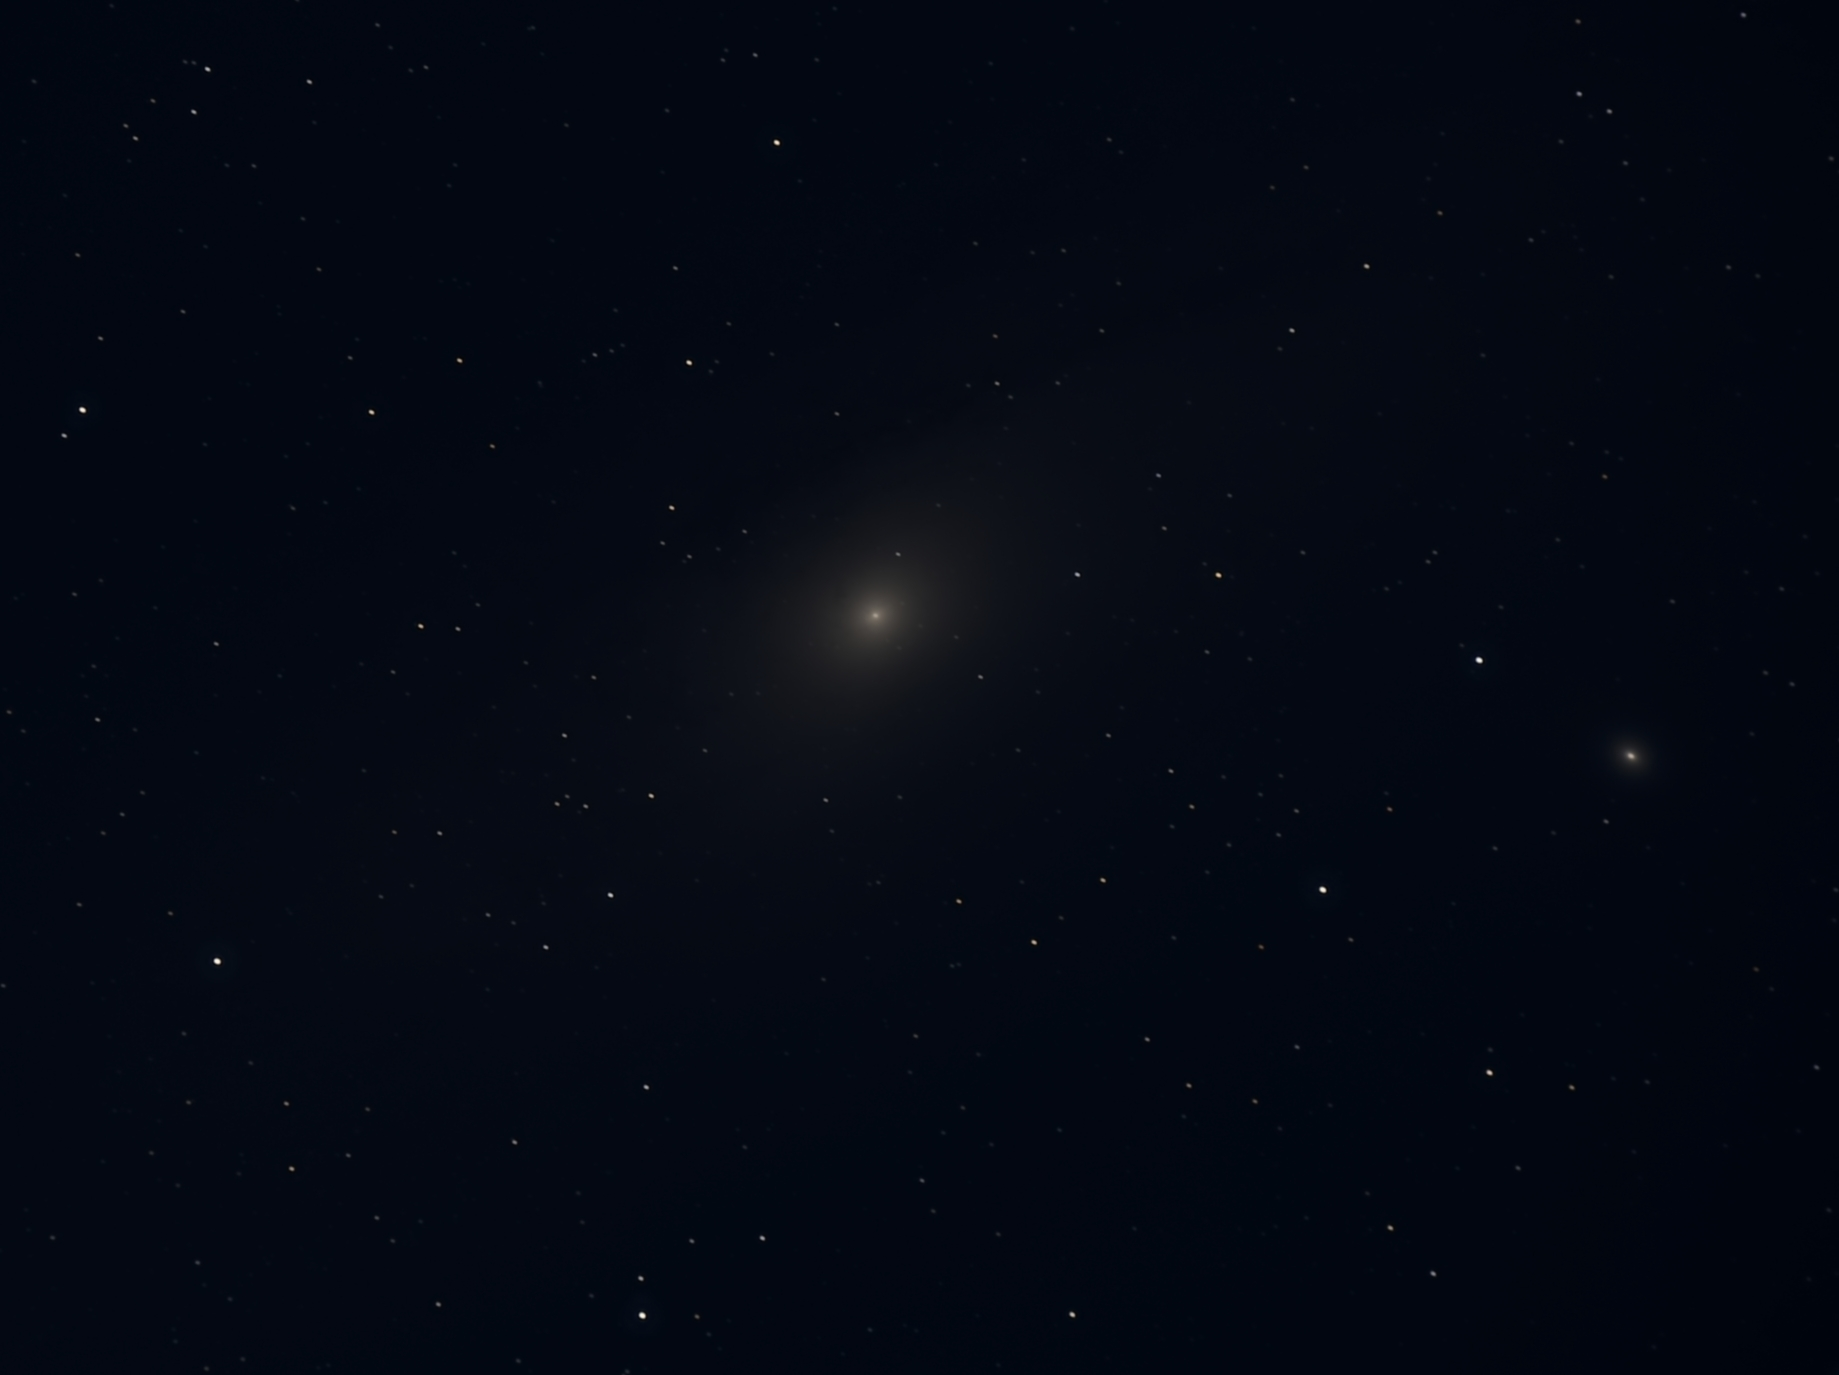 Image of the Andromeda Galaxy